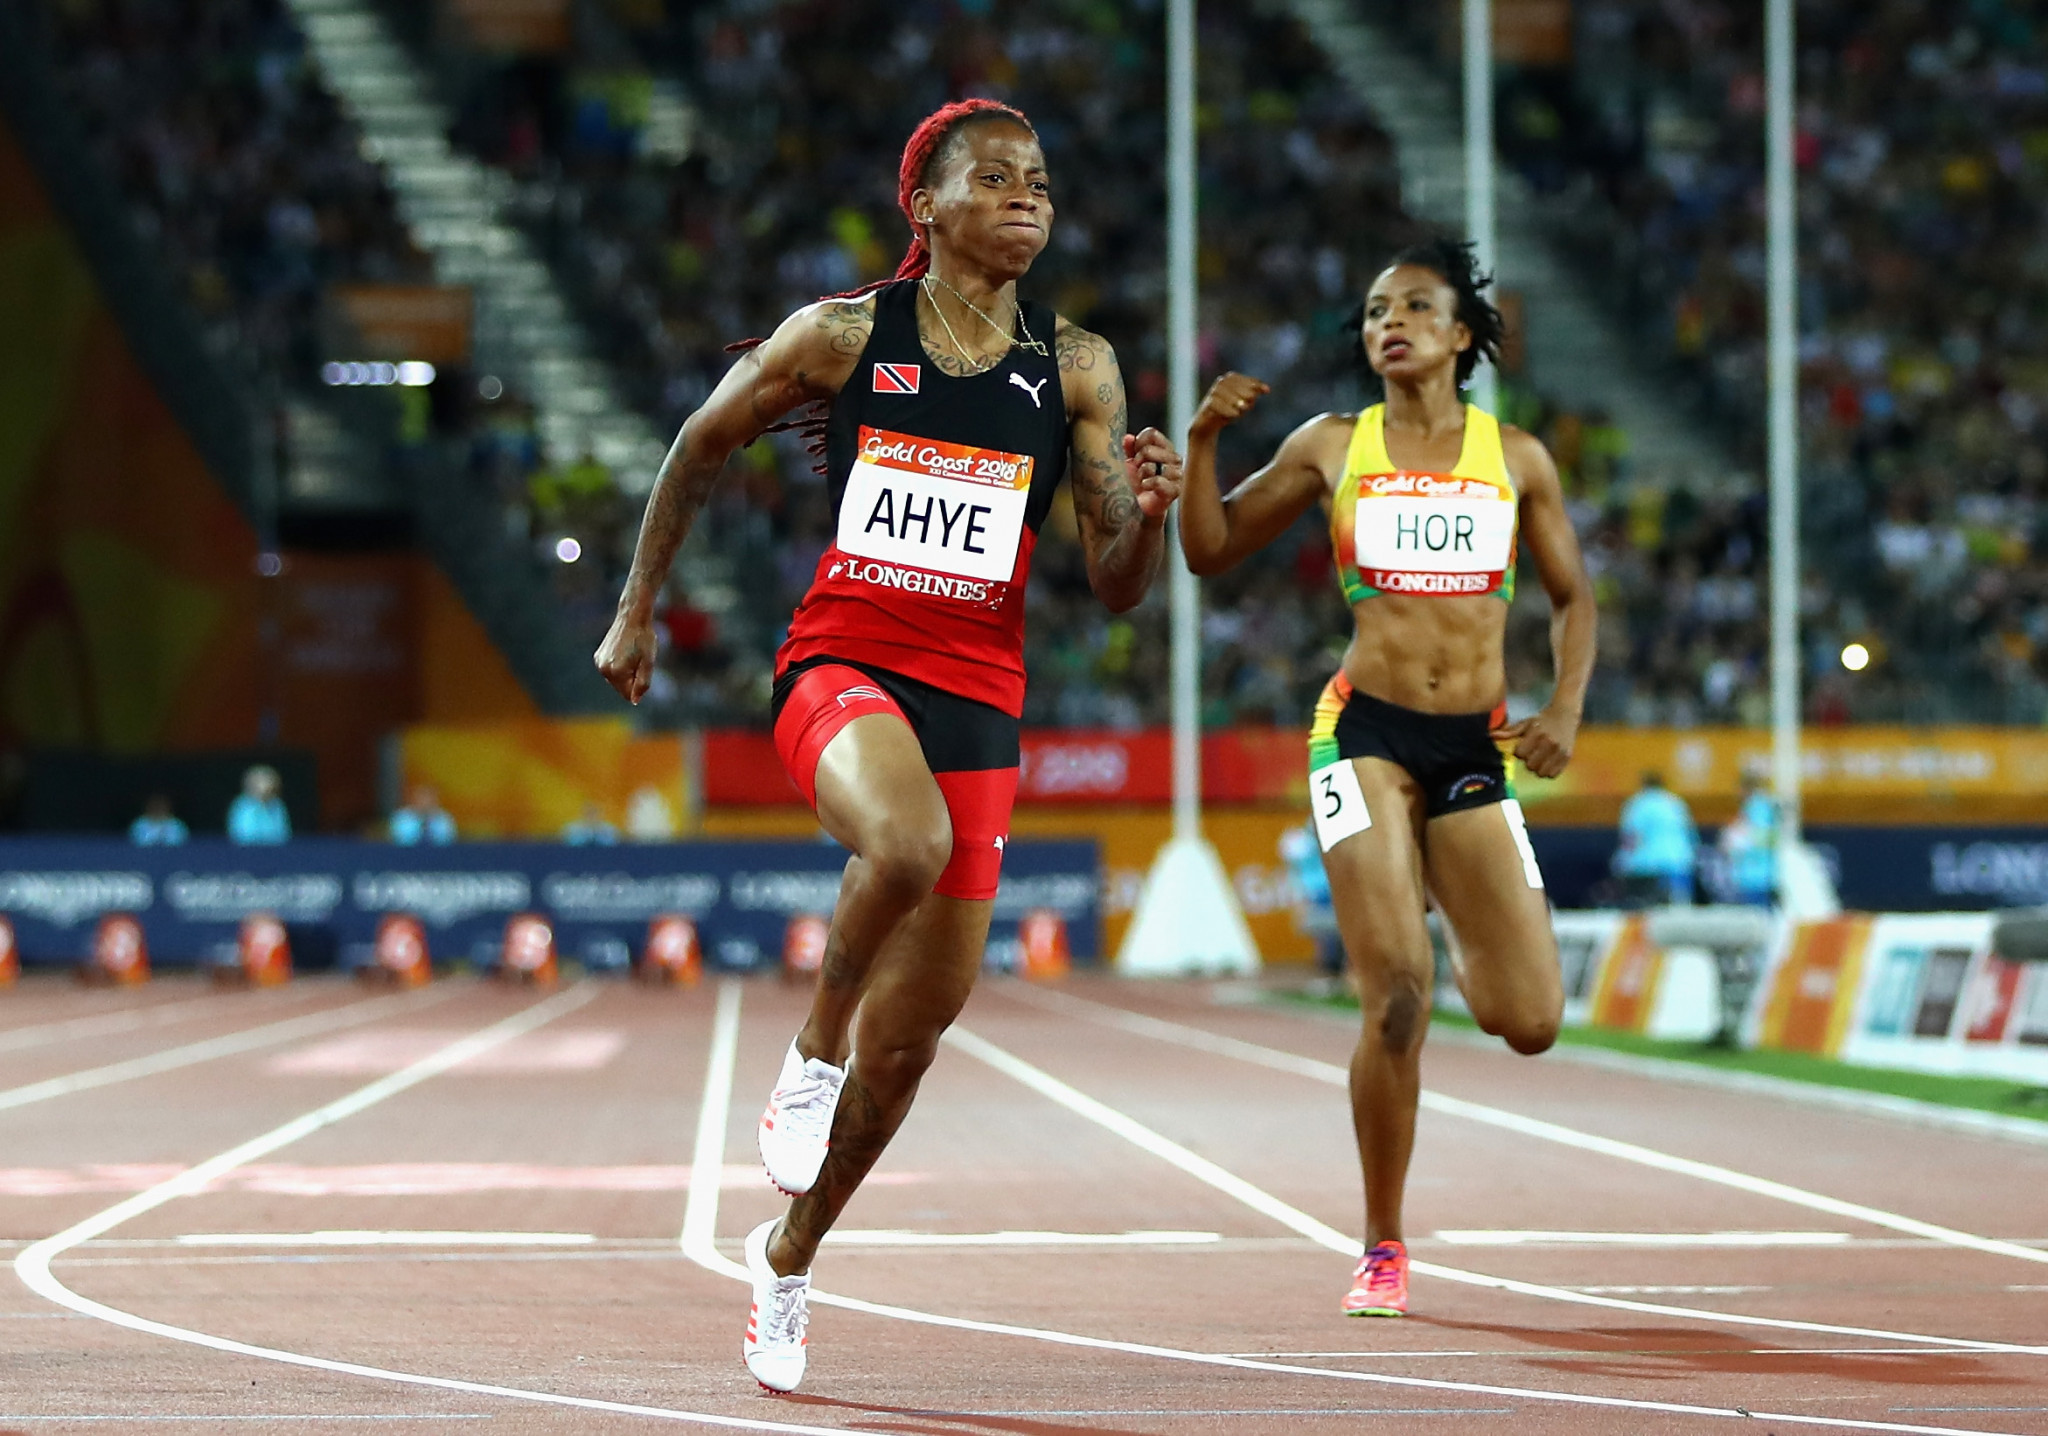 Trinidad and Tobago's Michelle-Lee Ahye won the women's 100m to become her country's first-ever female Commonwealth Games gold medallist and their first since Ato Boldo won the men's event at Kuala Lumpur 1998 ©Getty Images